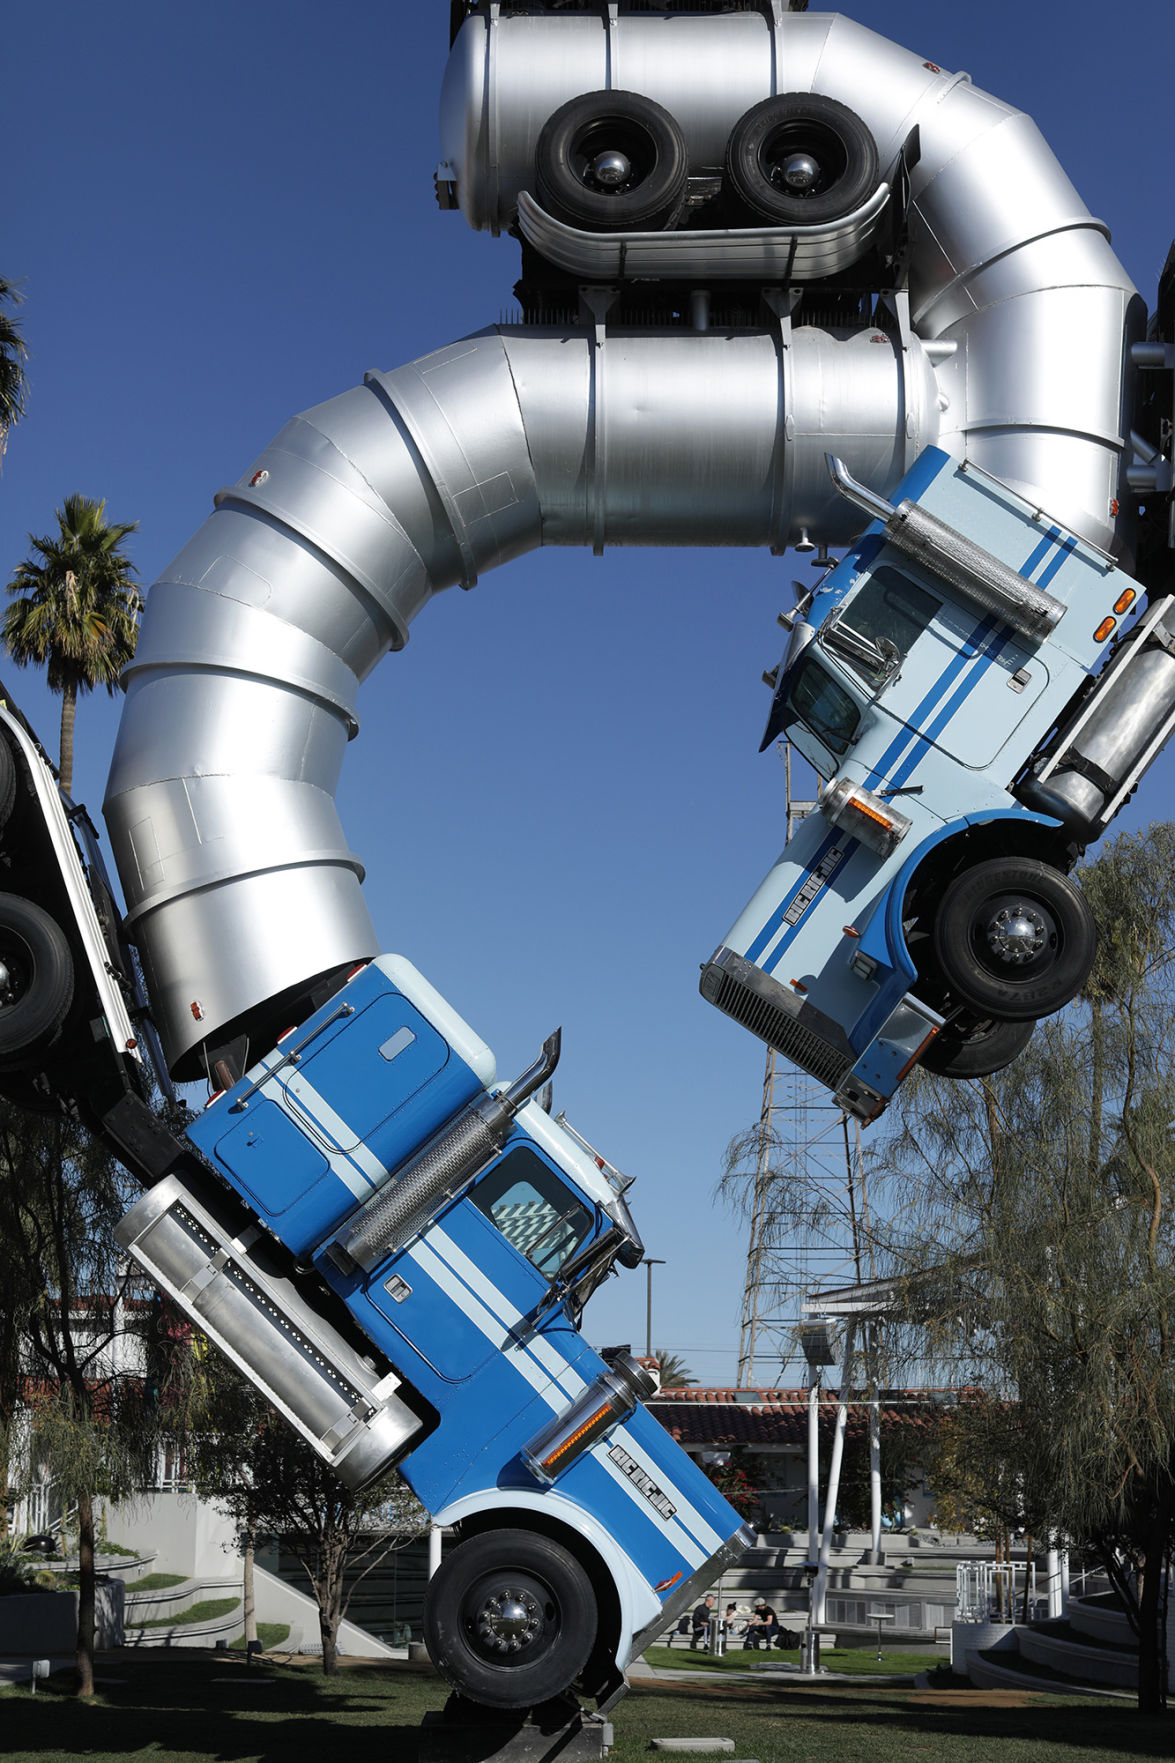 """The """"Big Rig Jig"""" is the signature sculpture at Fergusons Downtown, a space for local, small businesses and makers."""